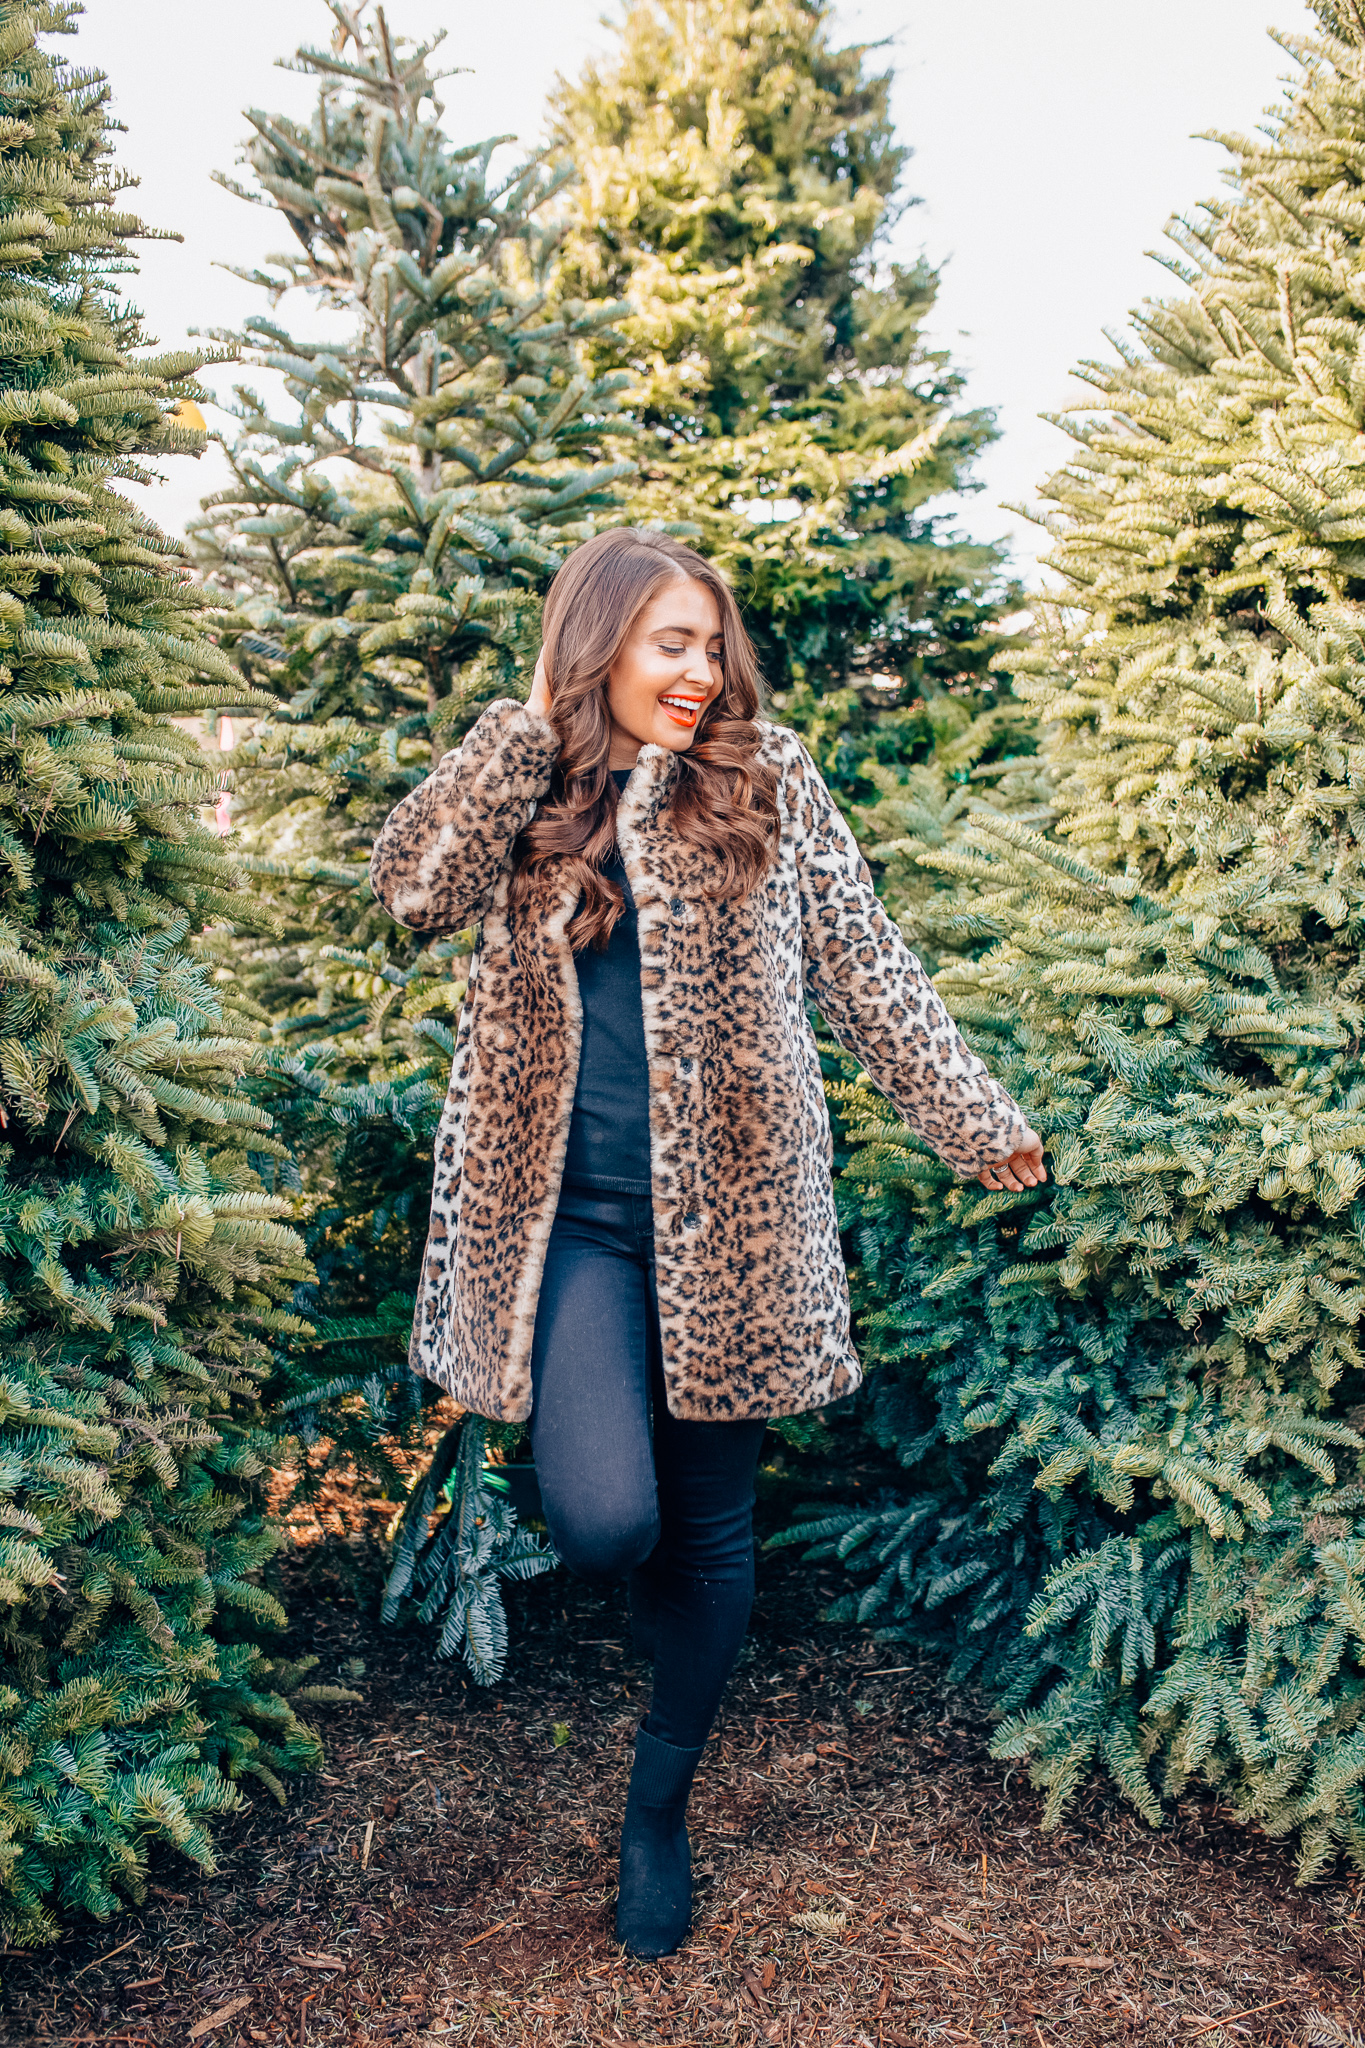 Leopard Holiday style featured by top Orange County fashion blogger, Maxie Elle: image of a woman wearing an Ann Taylor leopard print coat, Ann Taylor 3/4 sleeve black sweater, Ann Taylor black skinny jeans, and Ann Taylor block heel booties